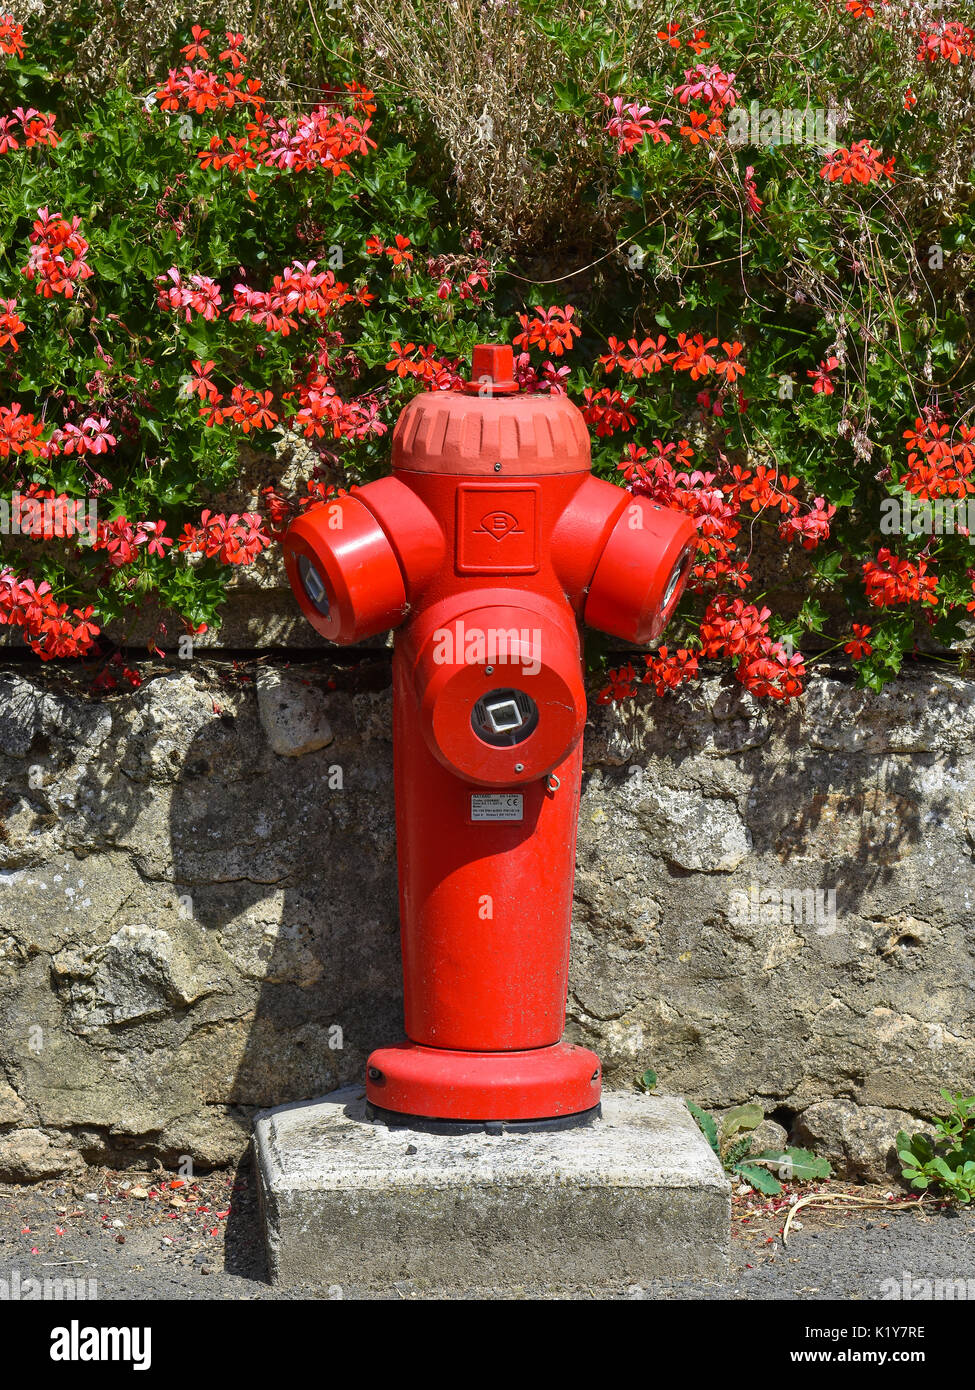 Red fire hydrant and geraniums, France. - Stock Image